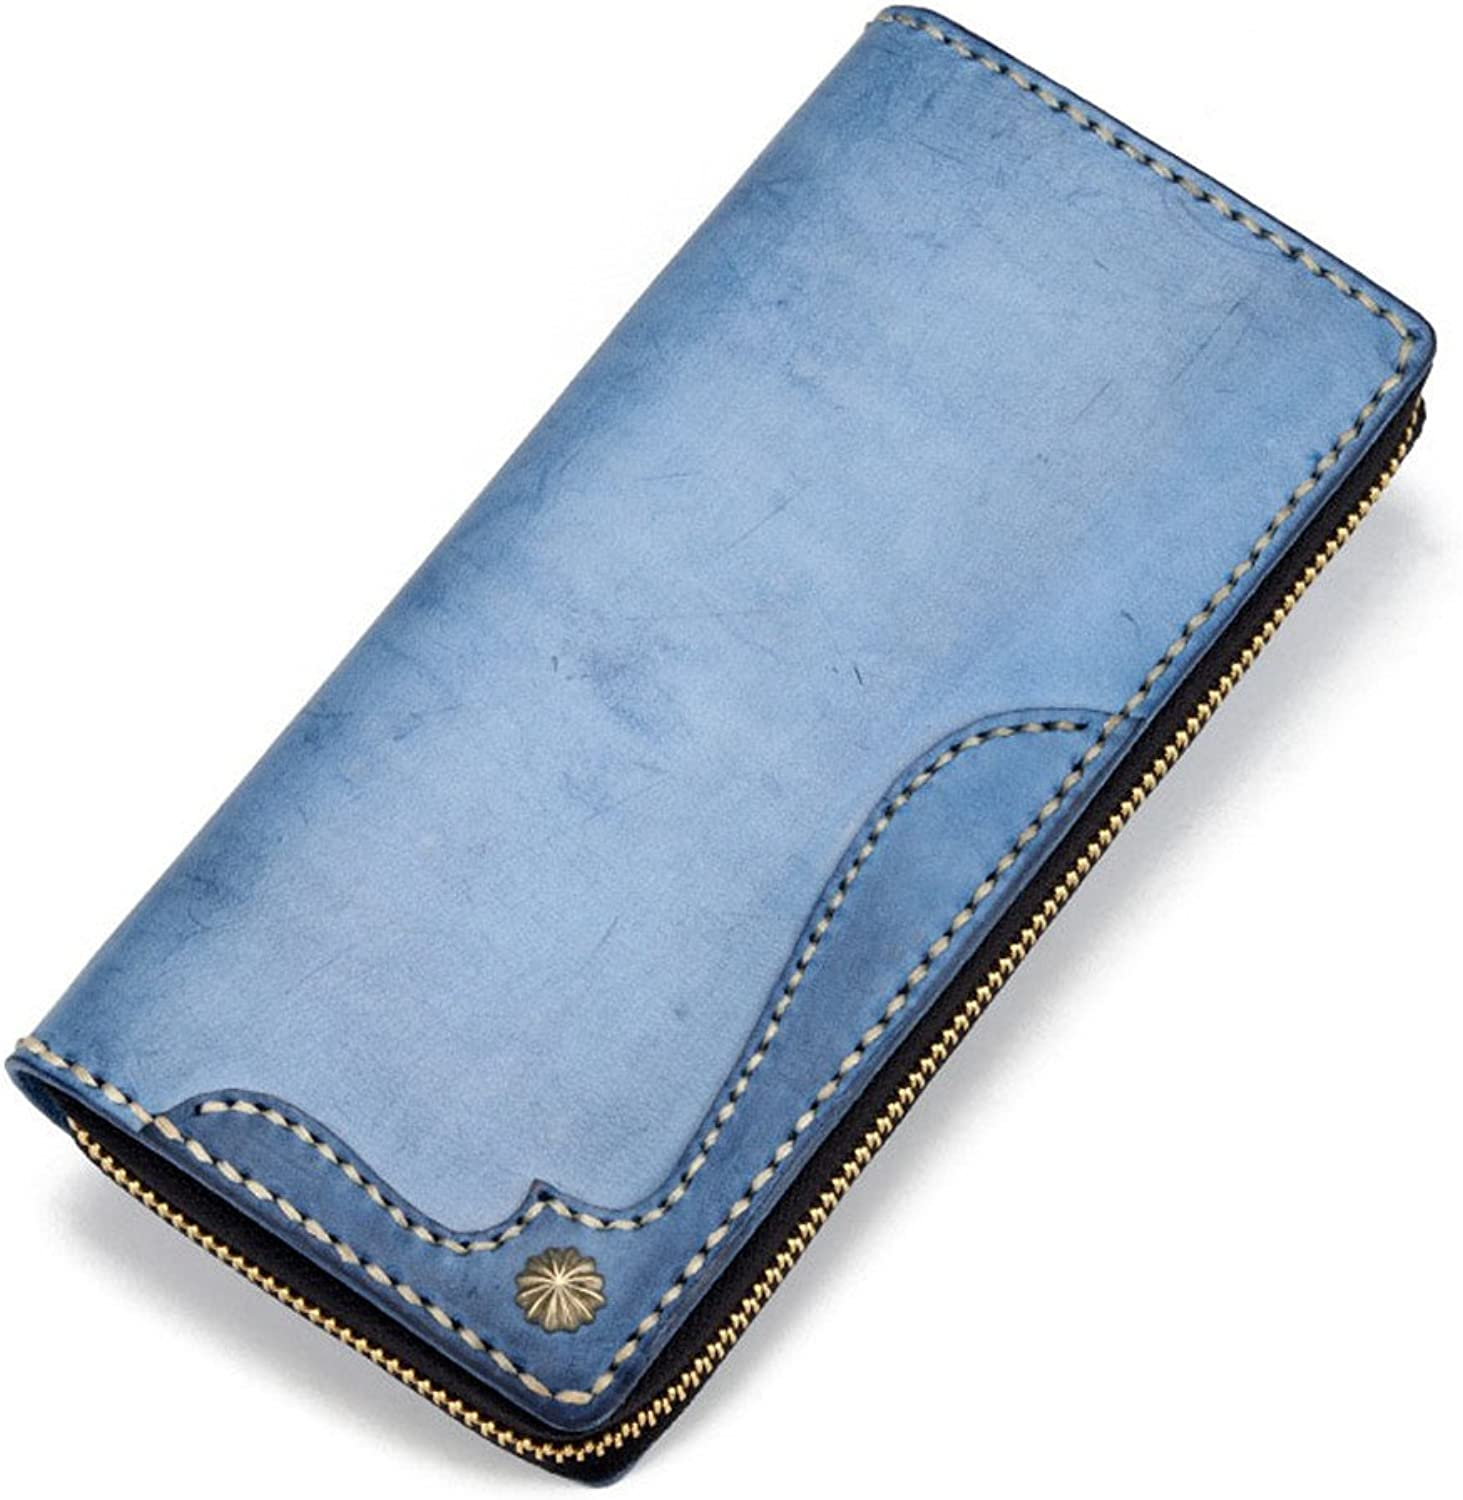 Women's Wallet Women's Leather Wallet Long Multicolor Optional Daily Shopping Leisure Travel Large Capacity MultiCard Slot Wallet Leather Wallet (color   bluee)